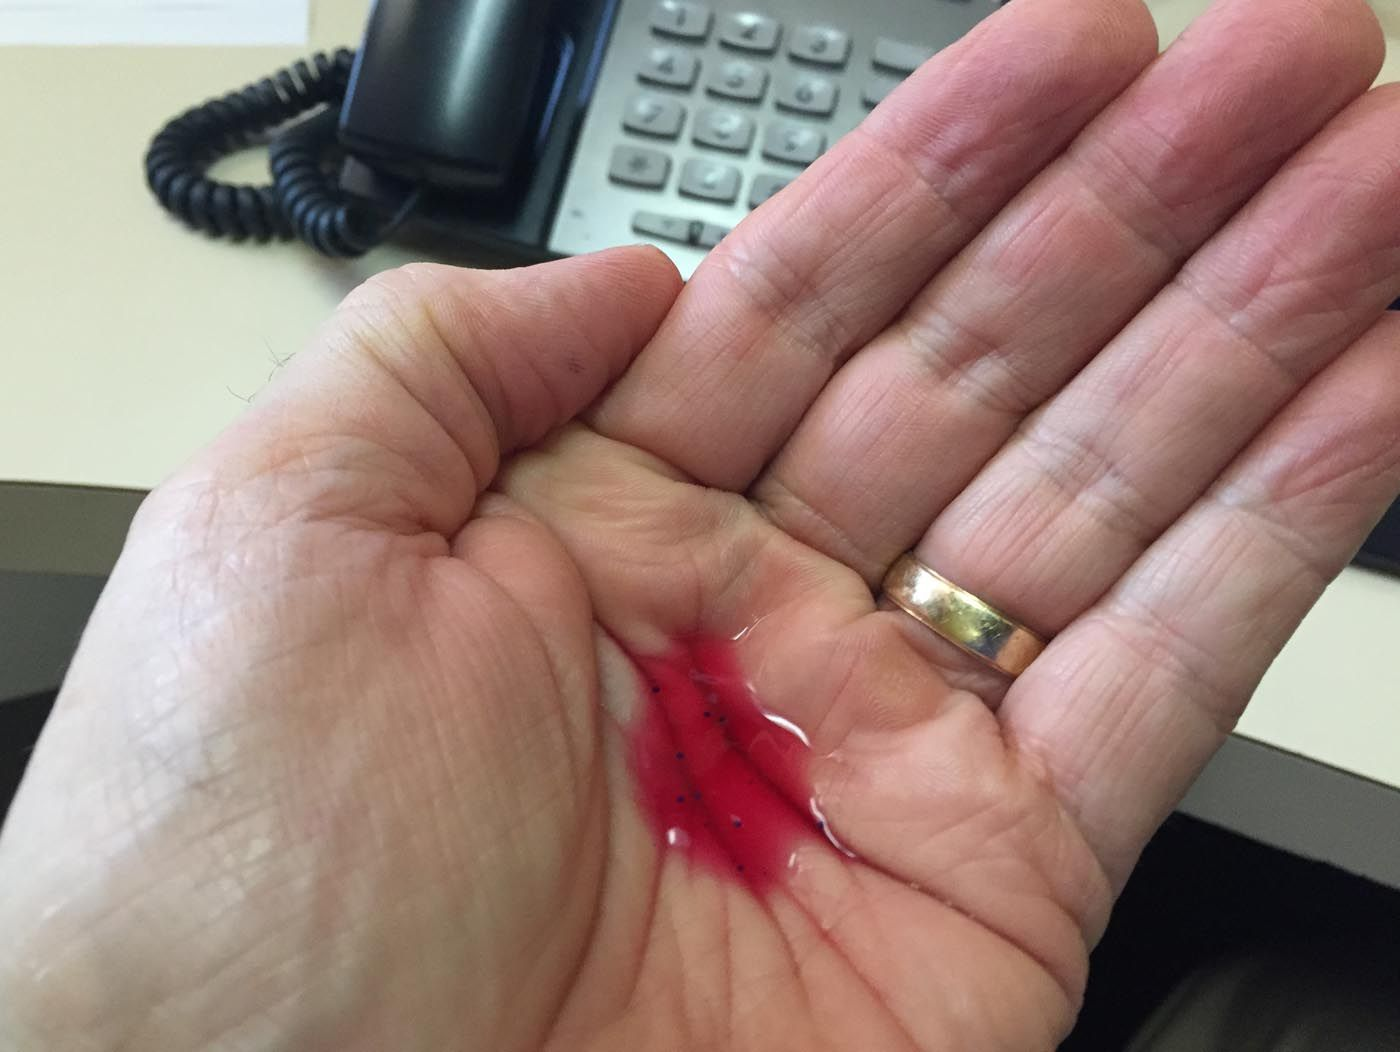 No Office Wound This Is Vampire Blood Hand Sanitizer Hand